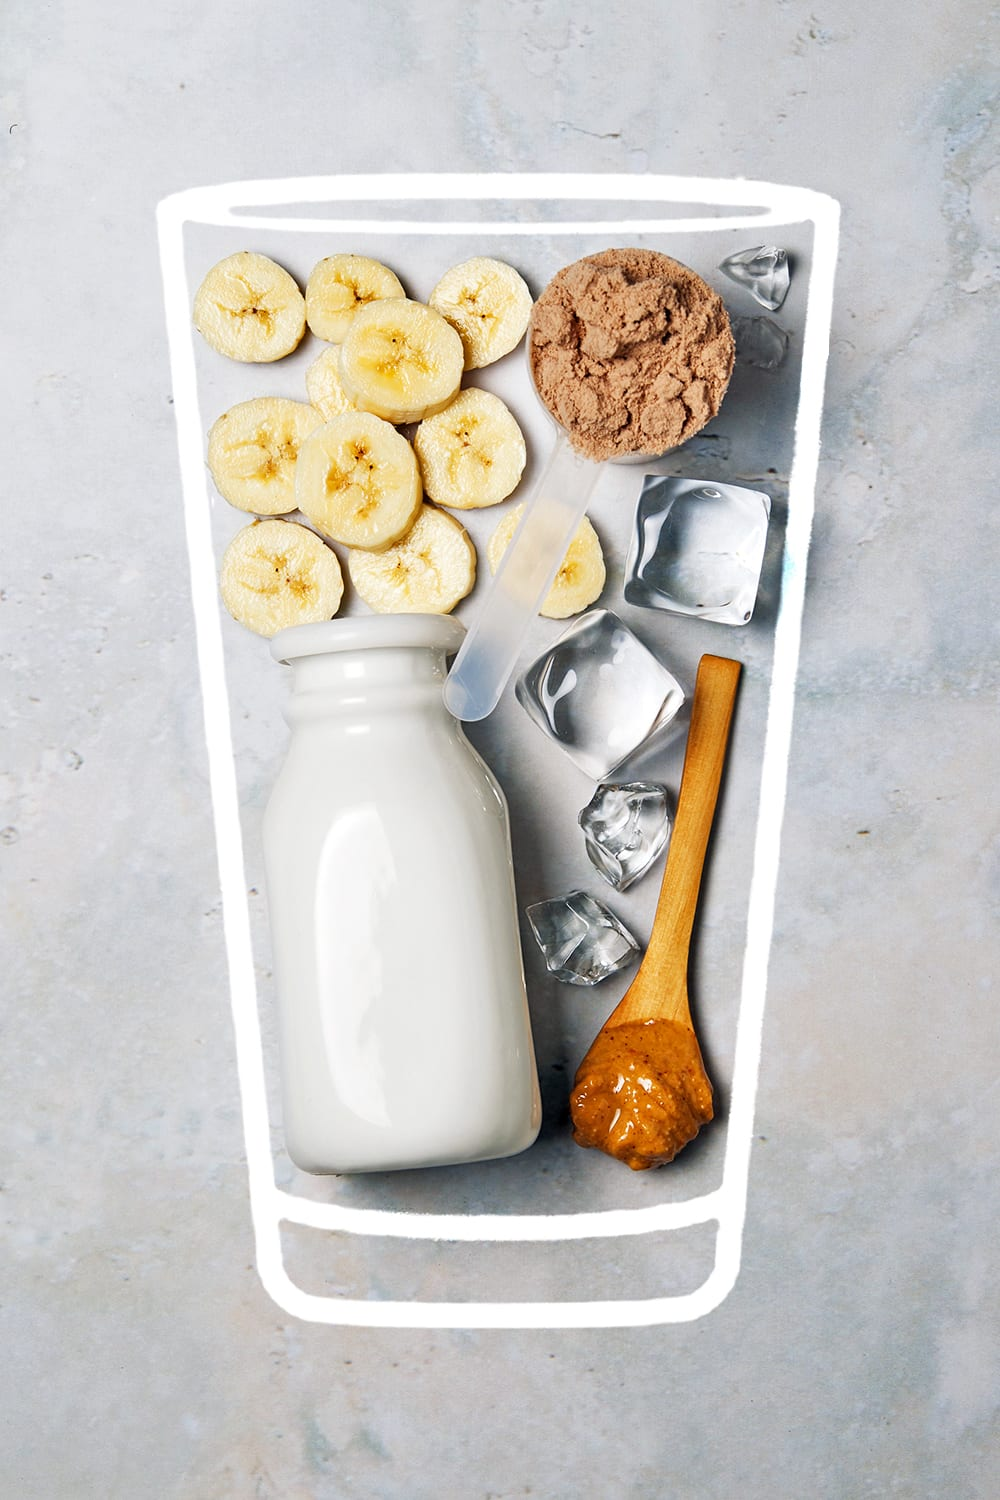 peanut butter banana shake - ingredients